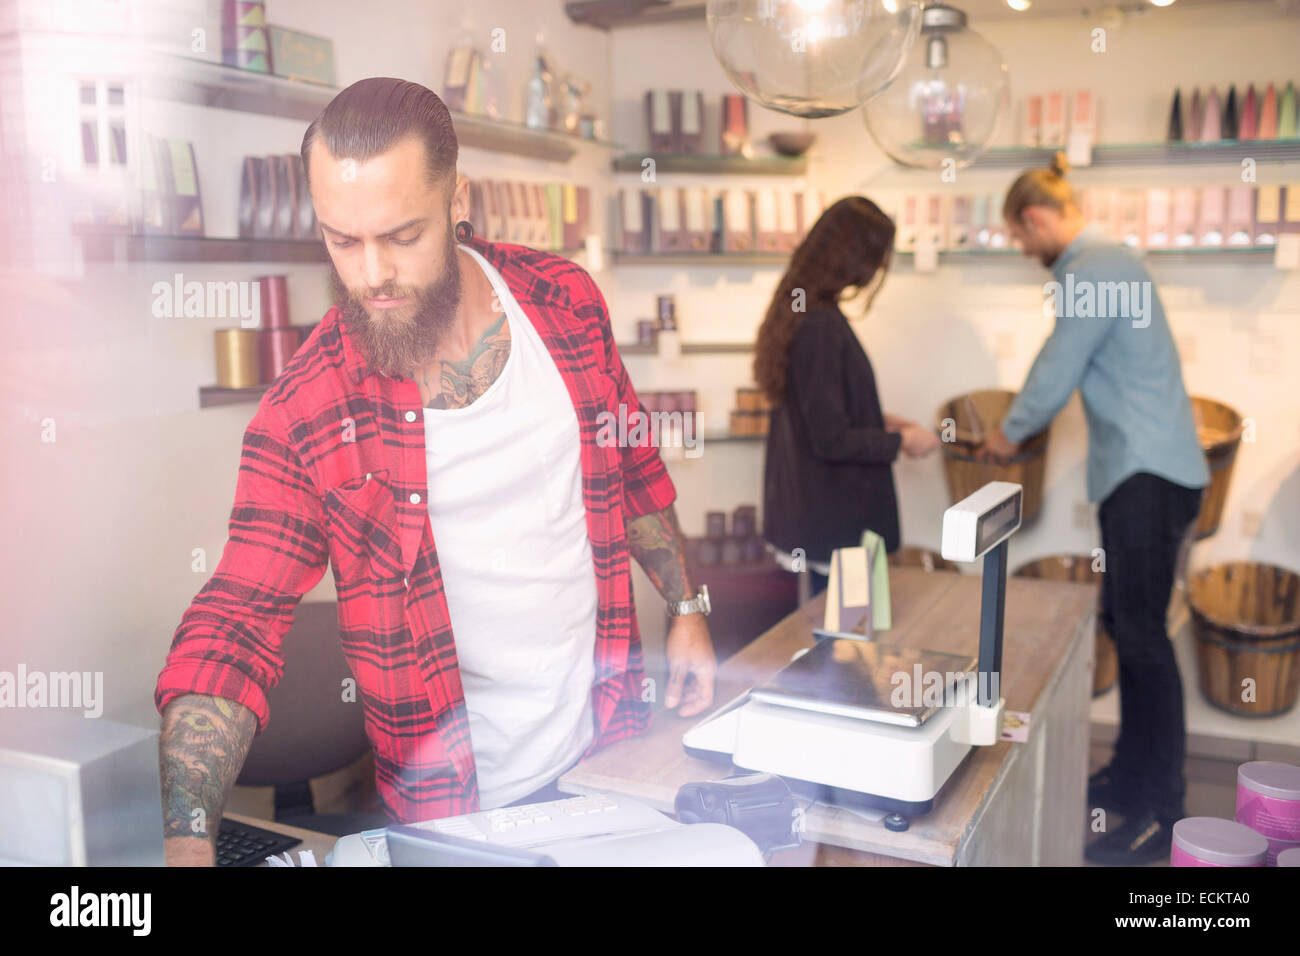 Owner standing at checkout counter while customers shopping in background - Stock Image